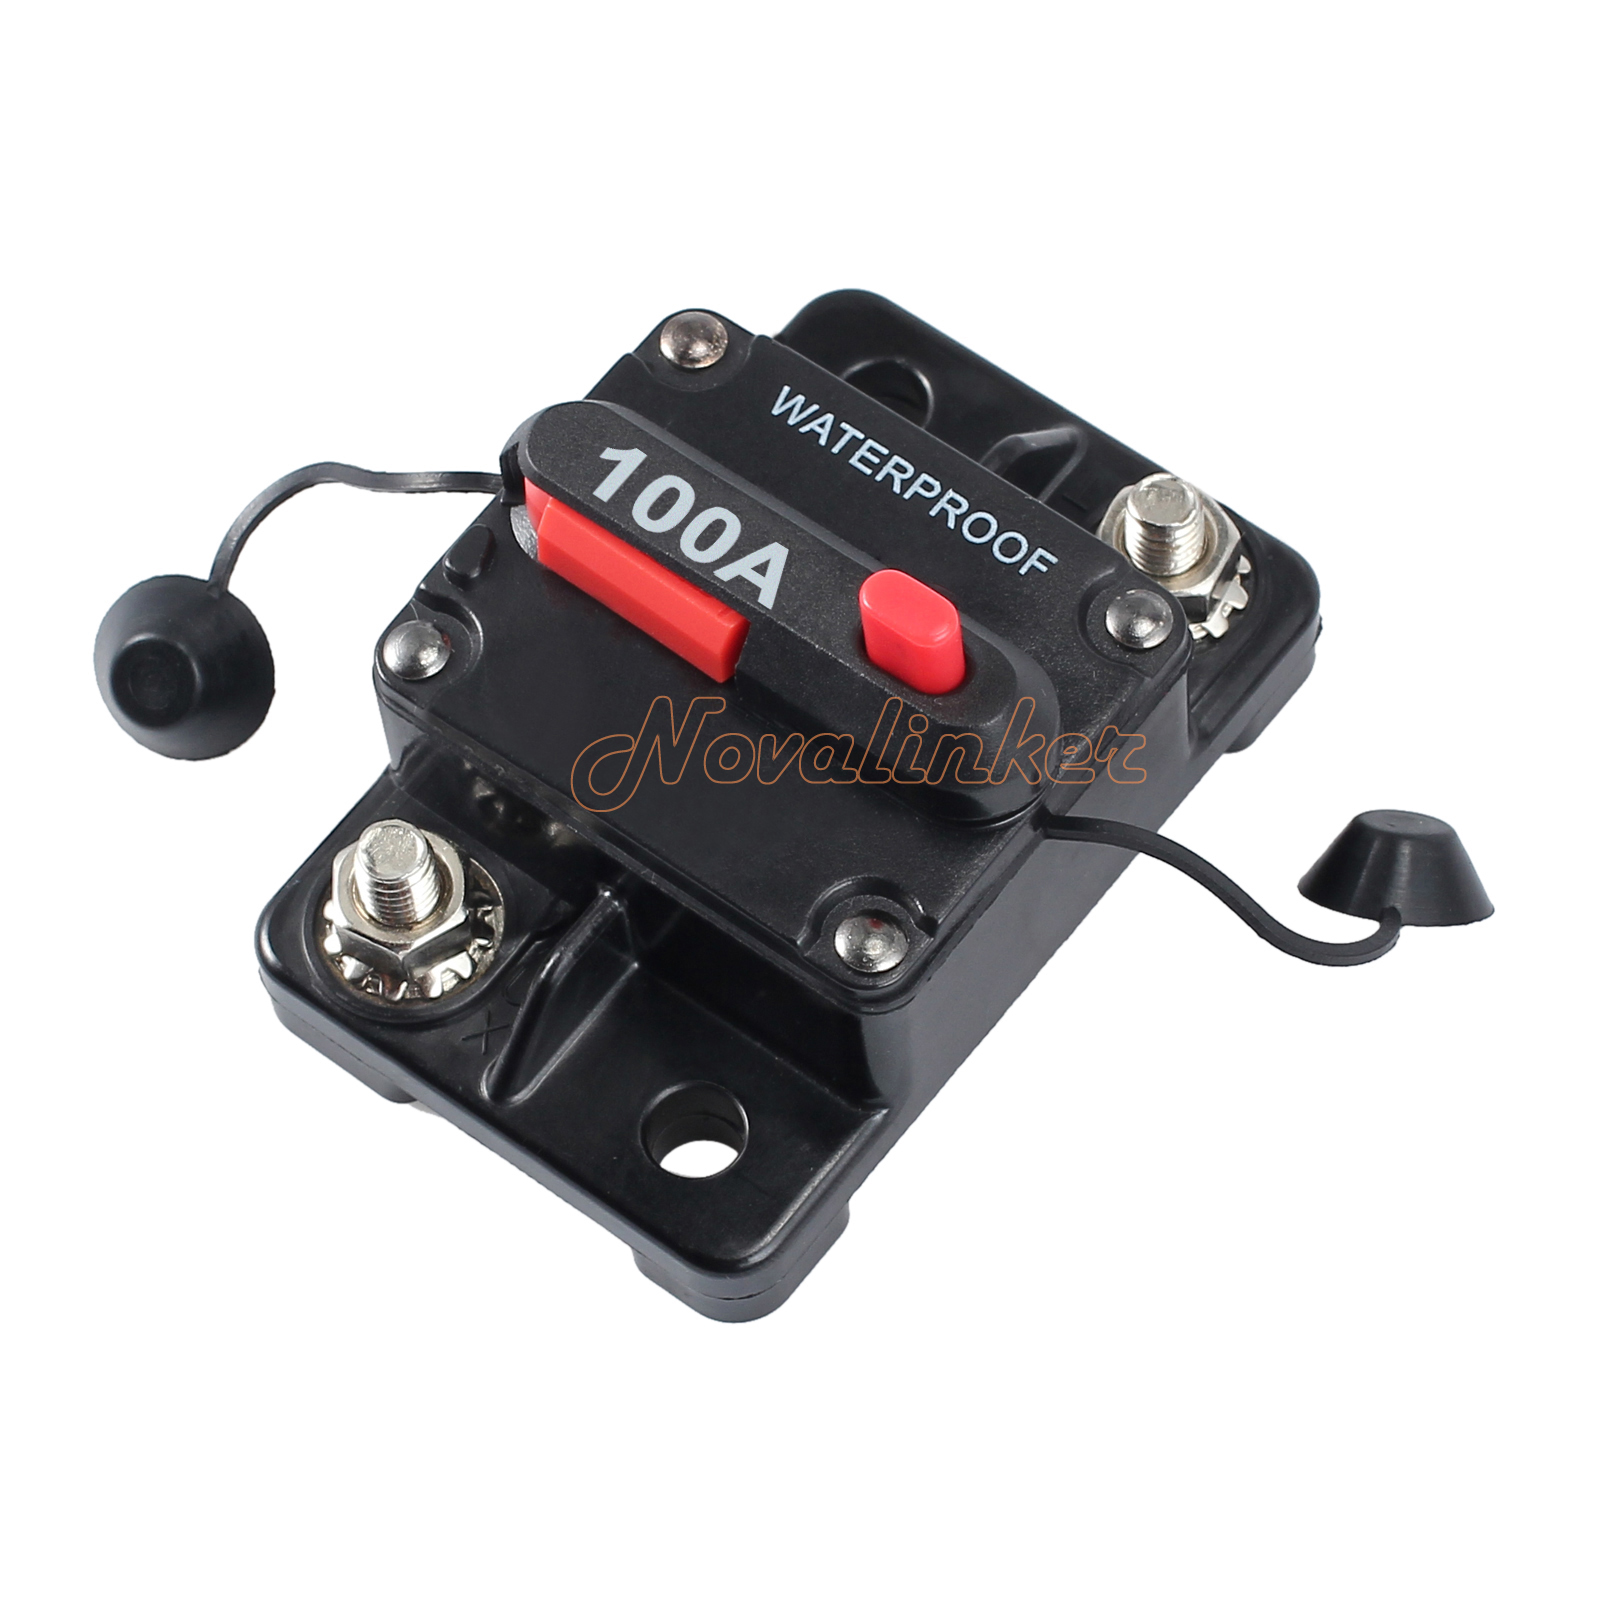 100a amp circuit breaker dual battery ip67 waterproof 12v